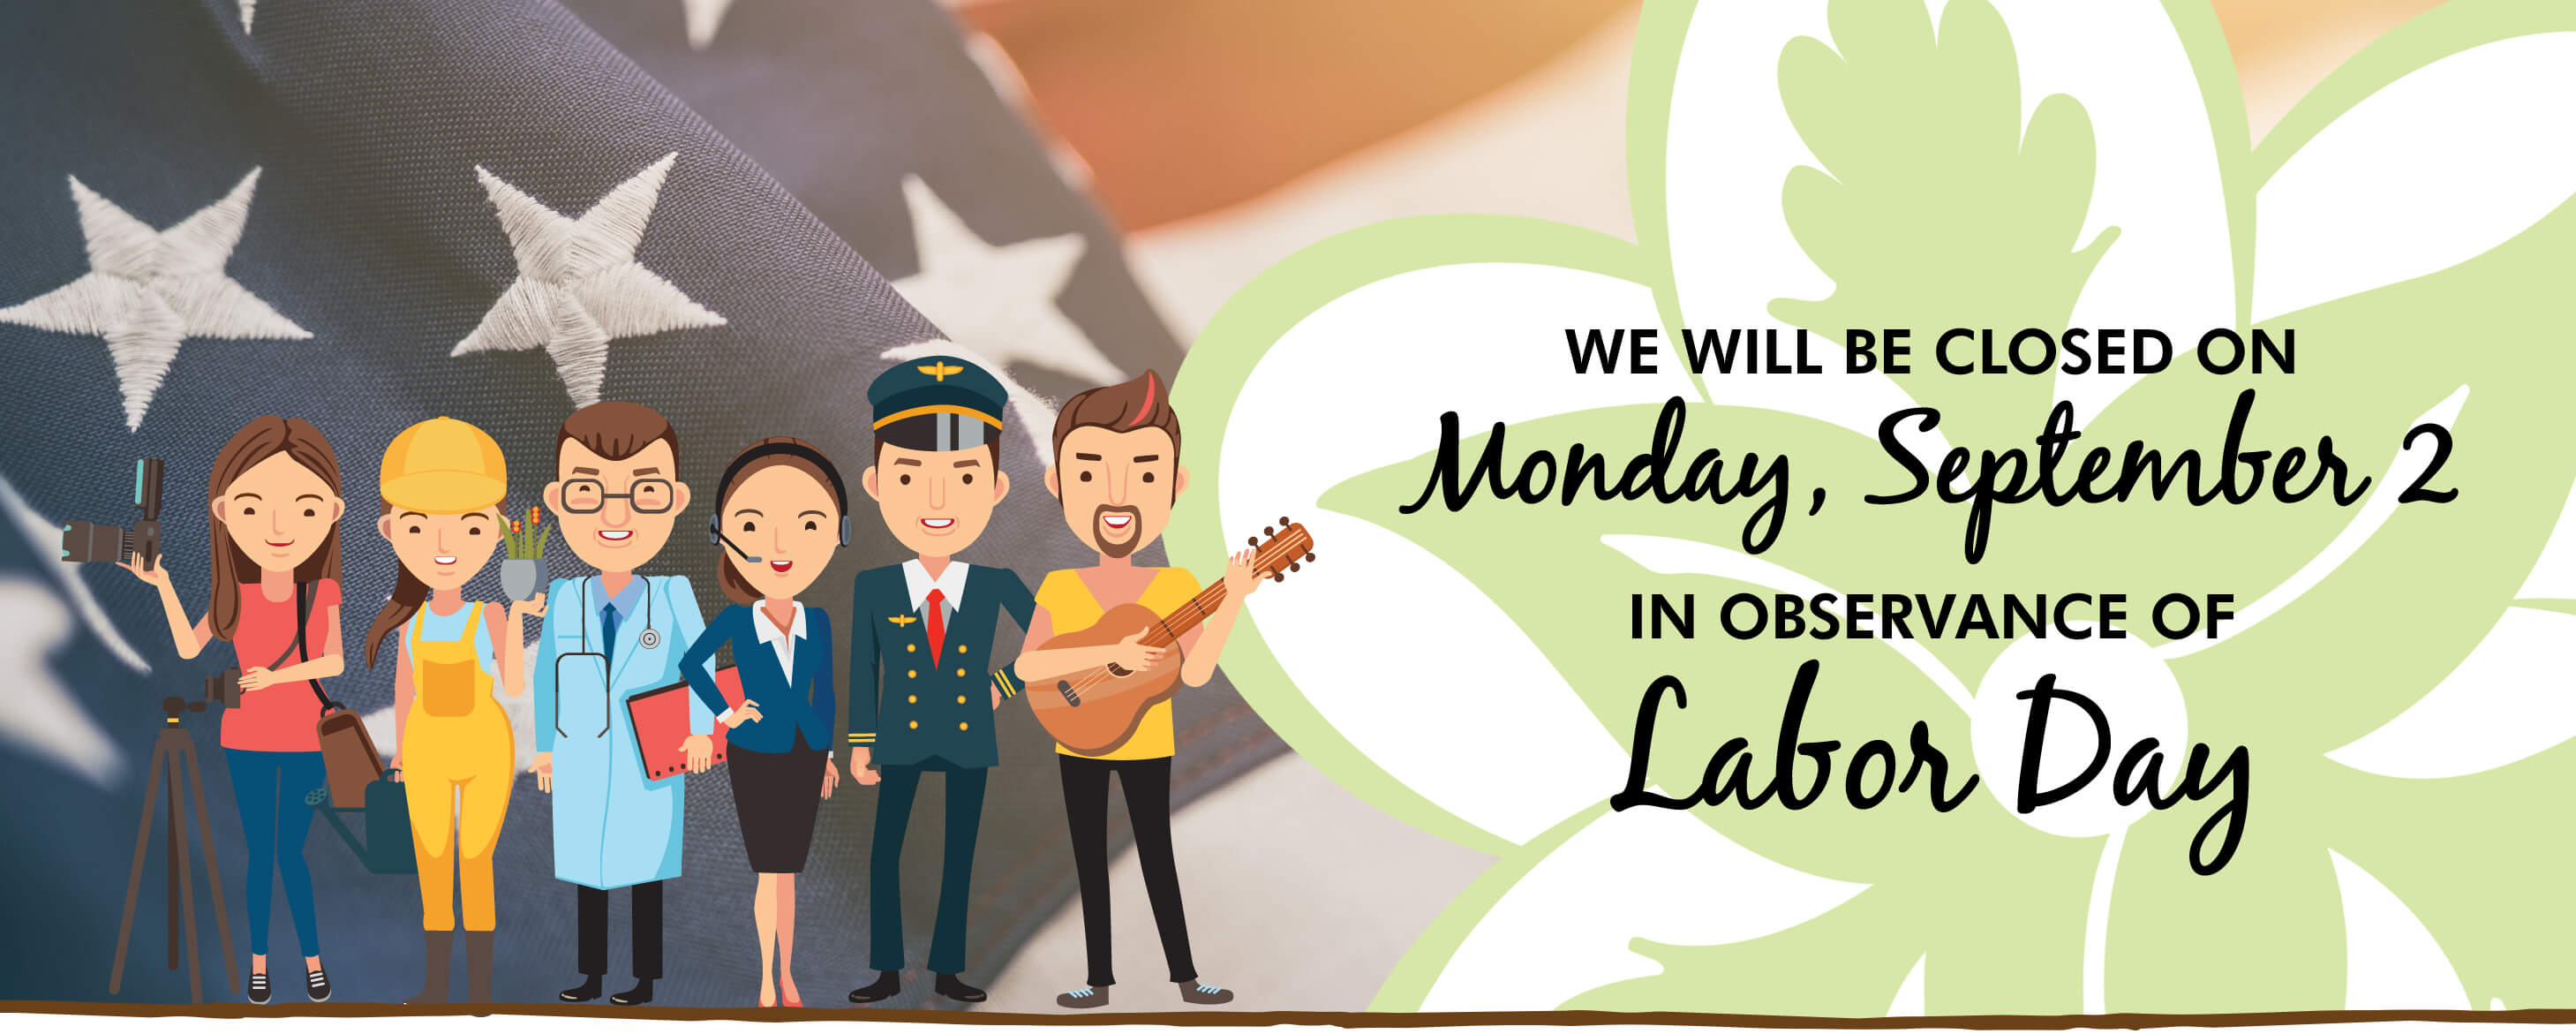 Our branches will be closed on Monday, September 2, in observance of Labor Day.